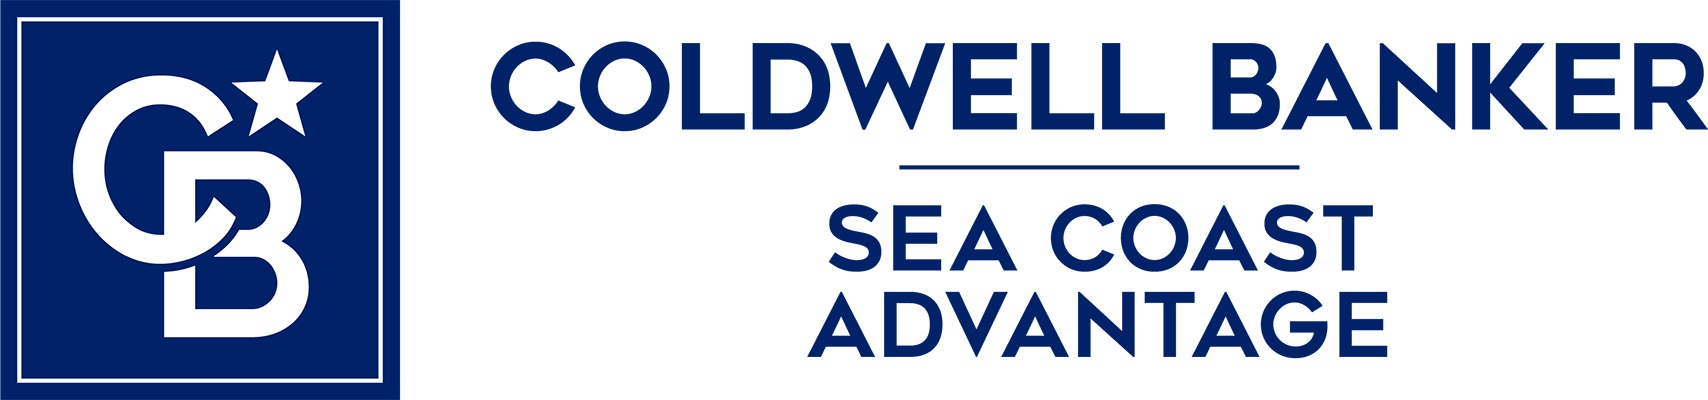 Rich Bove - Coldwell Banker Sea Coast Advantage Realty Logo